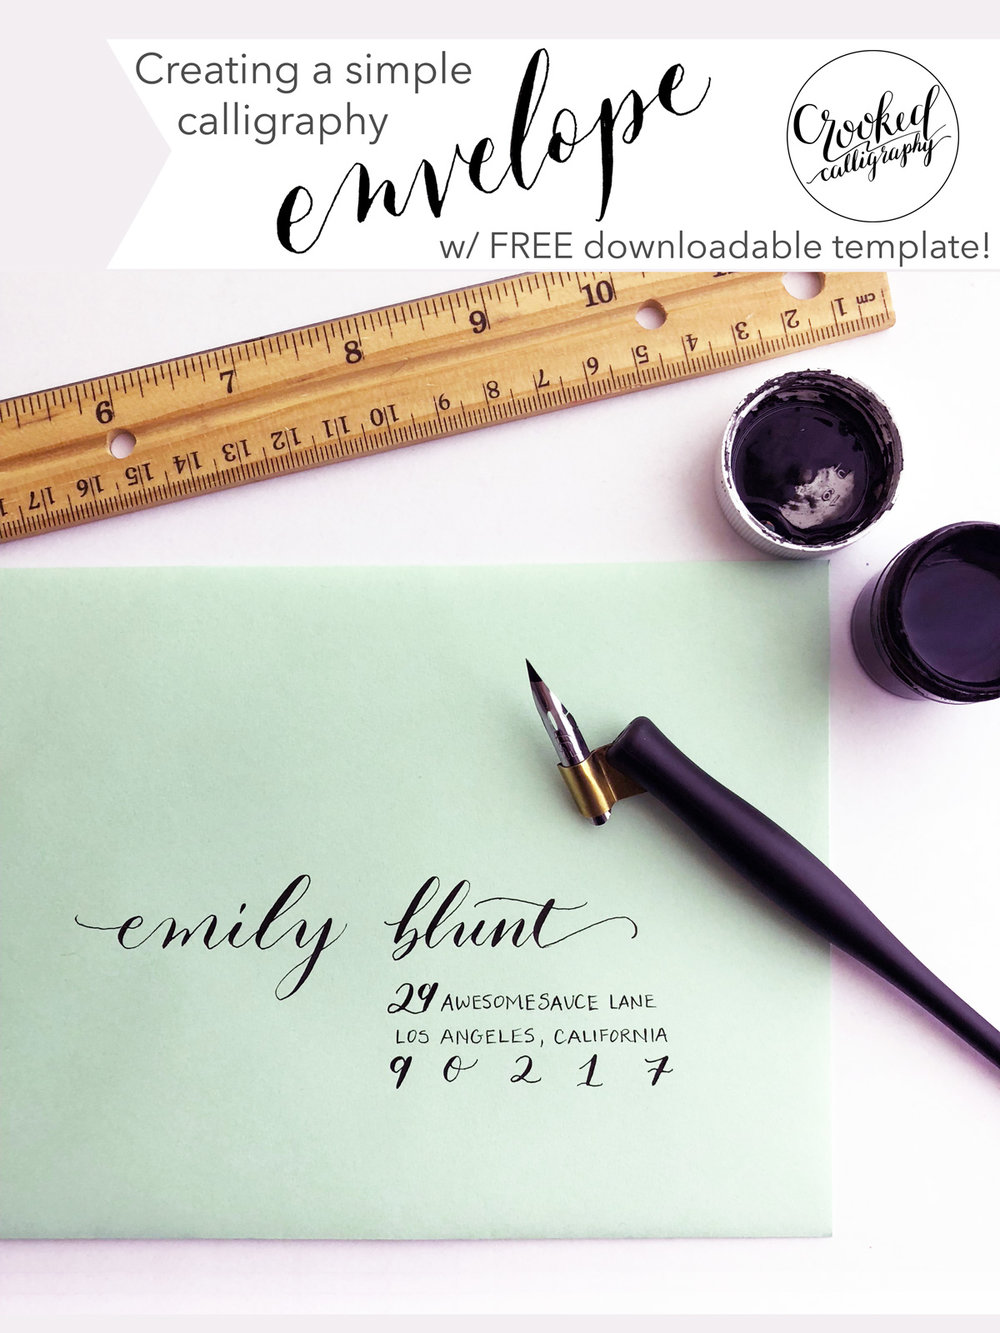 Simple Calligraphy Envelope for Beginners by Crooked Calligraphy